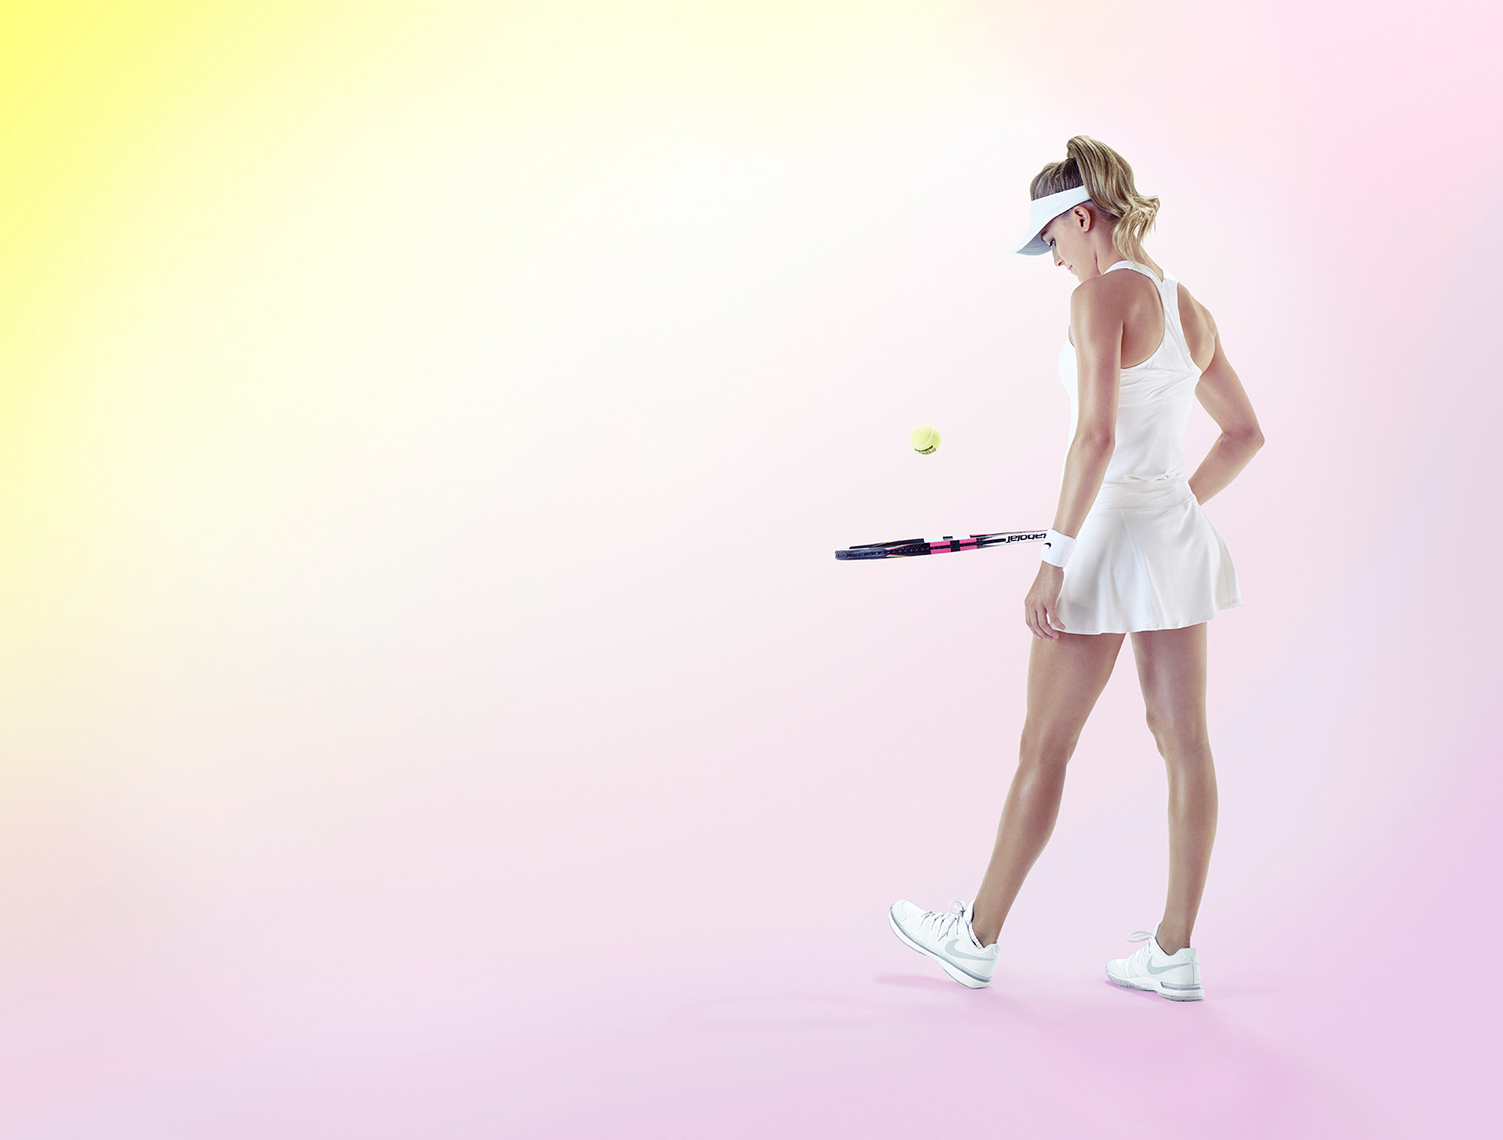 138_DietCoke_GenieBouchard_89177-03shadow